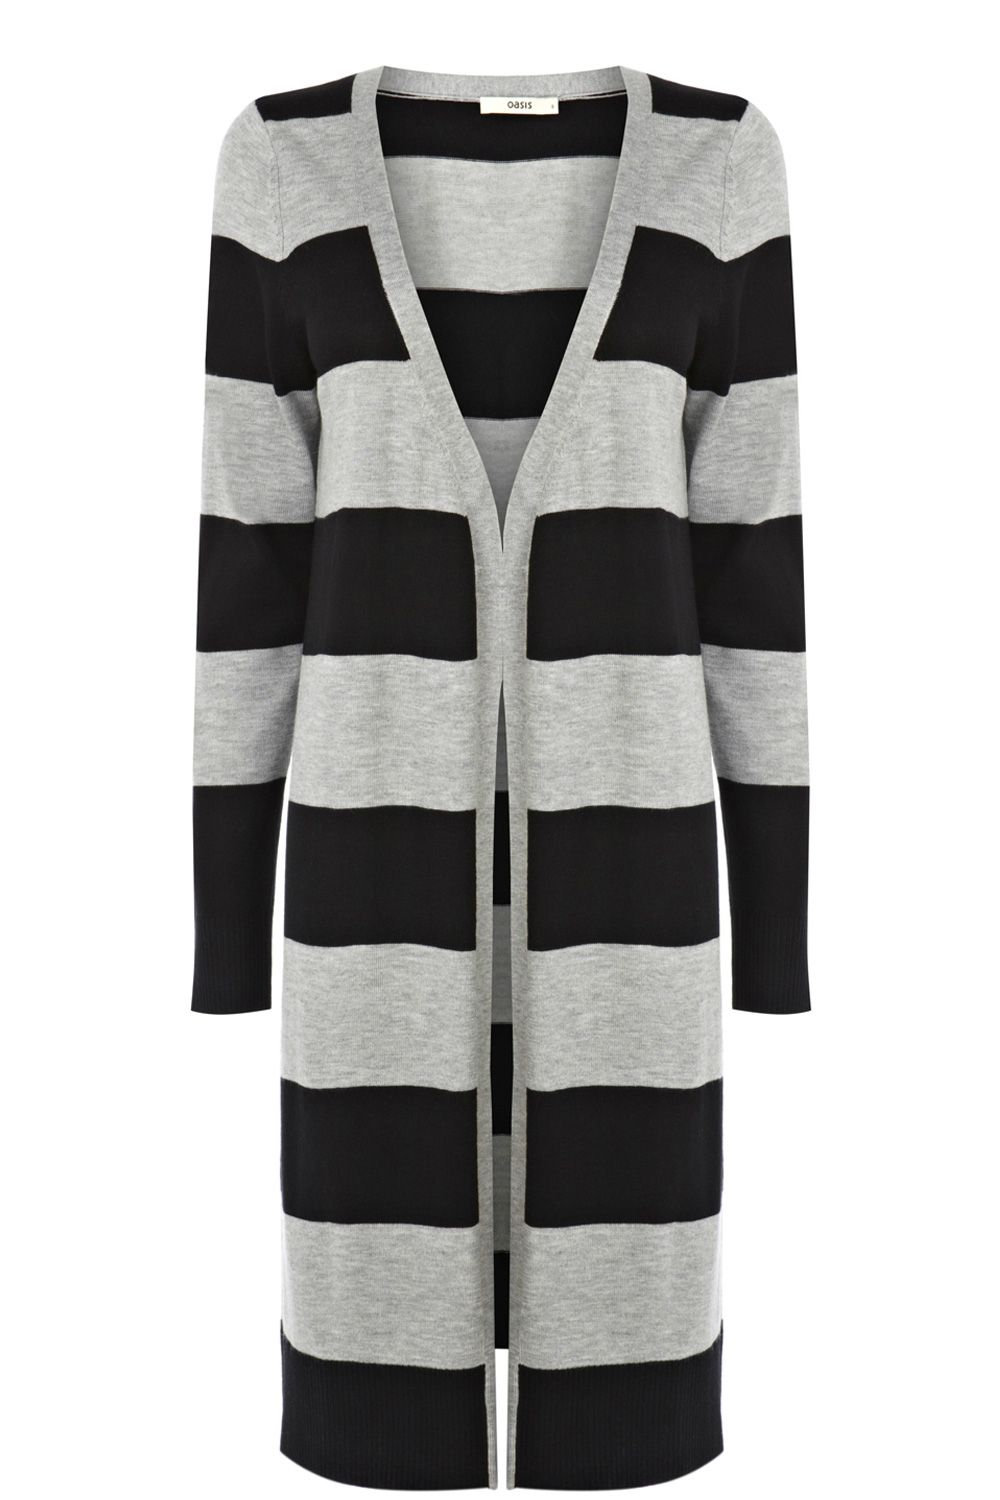 Stripe edge to edge cardi